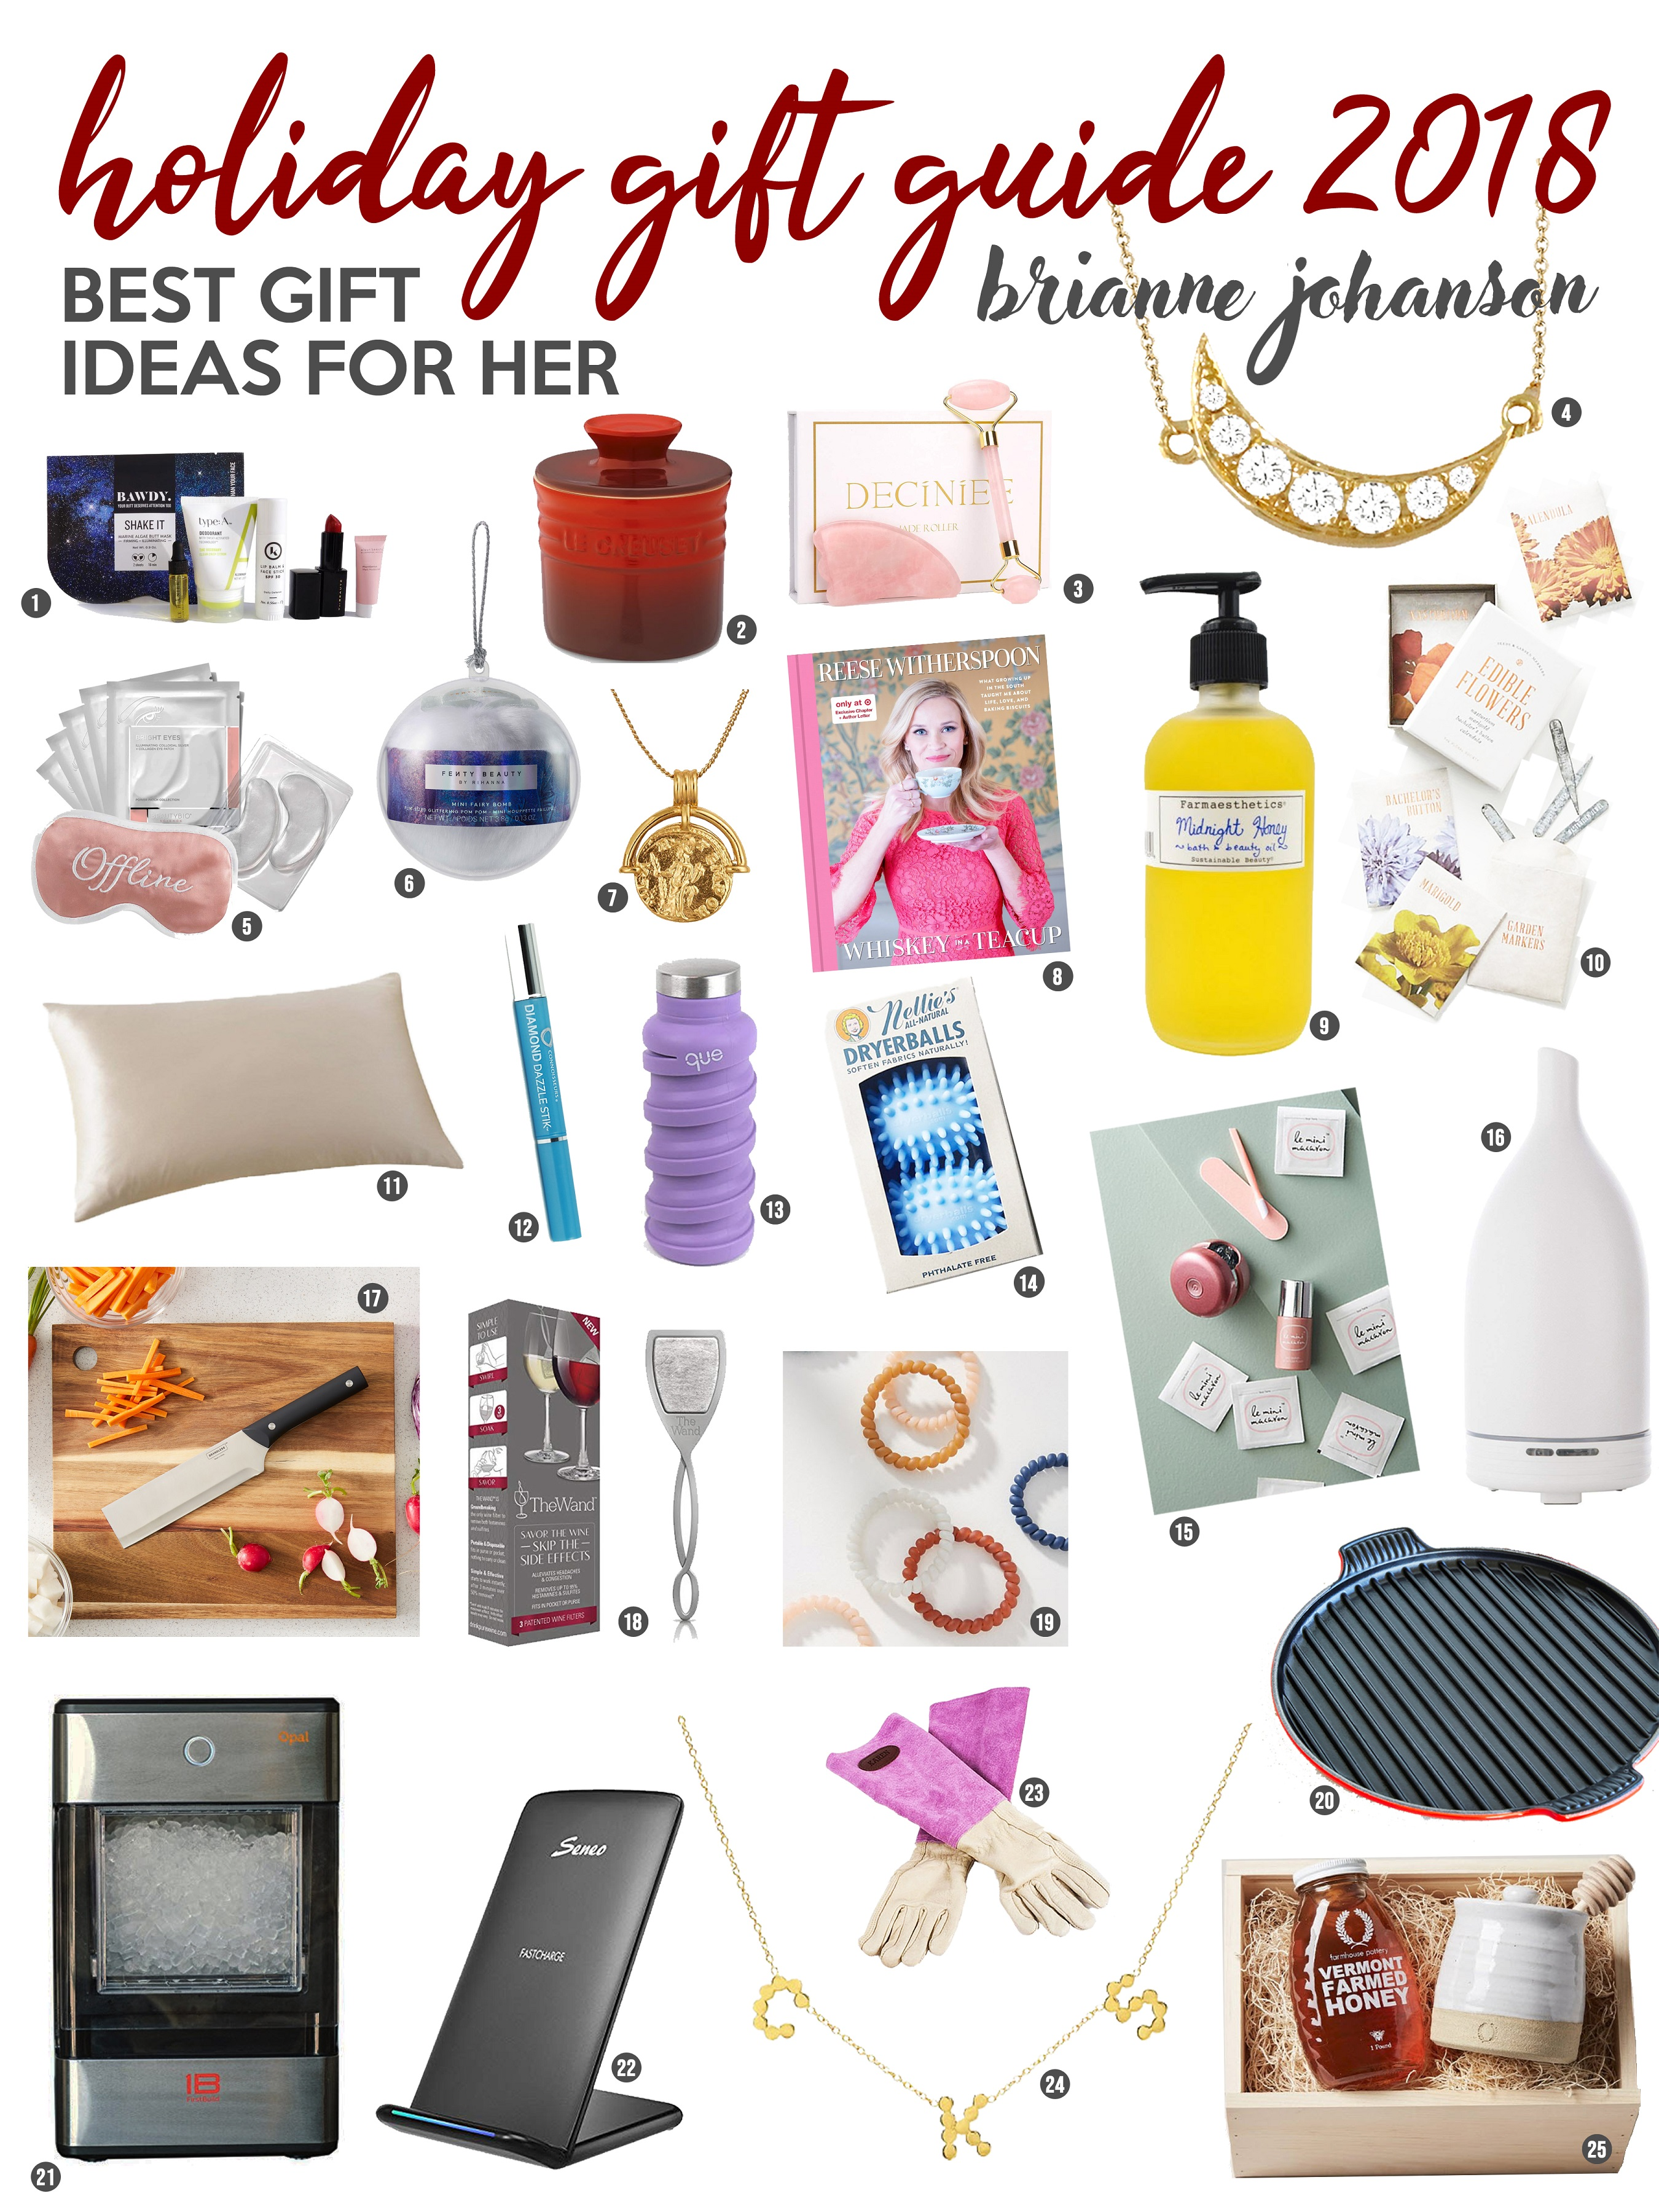 2018 Holiday Gift Guide for Her  sc 1 st  Brianne Johanson & 2018 Holiday Gift Guide for Her u2013 Brianne Johanson